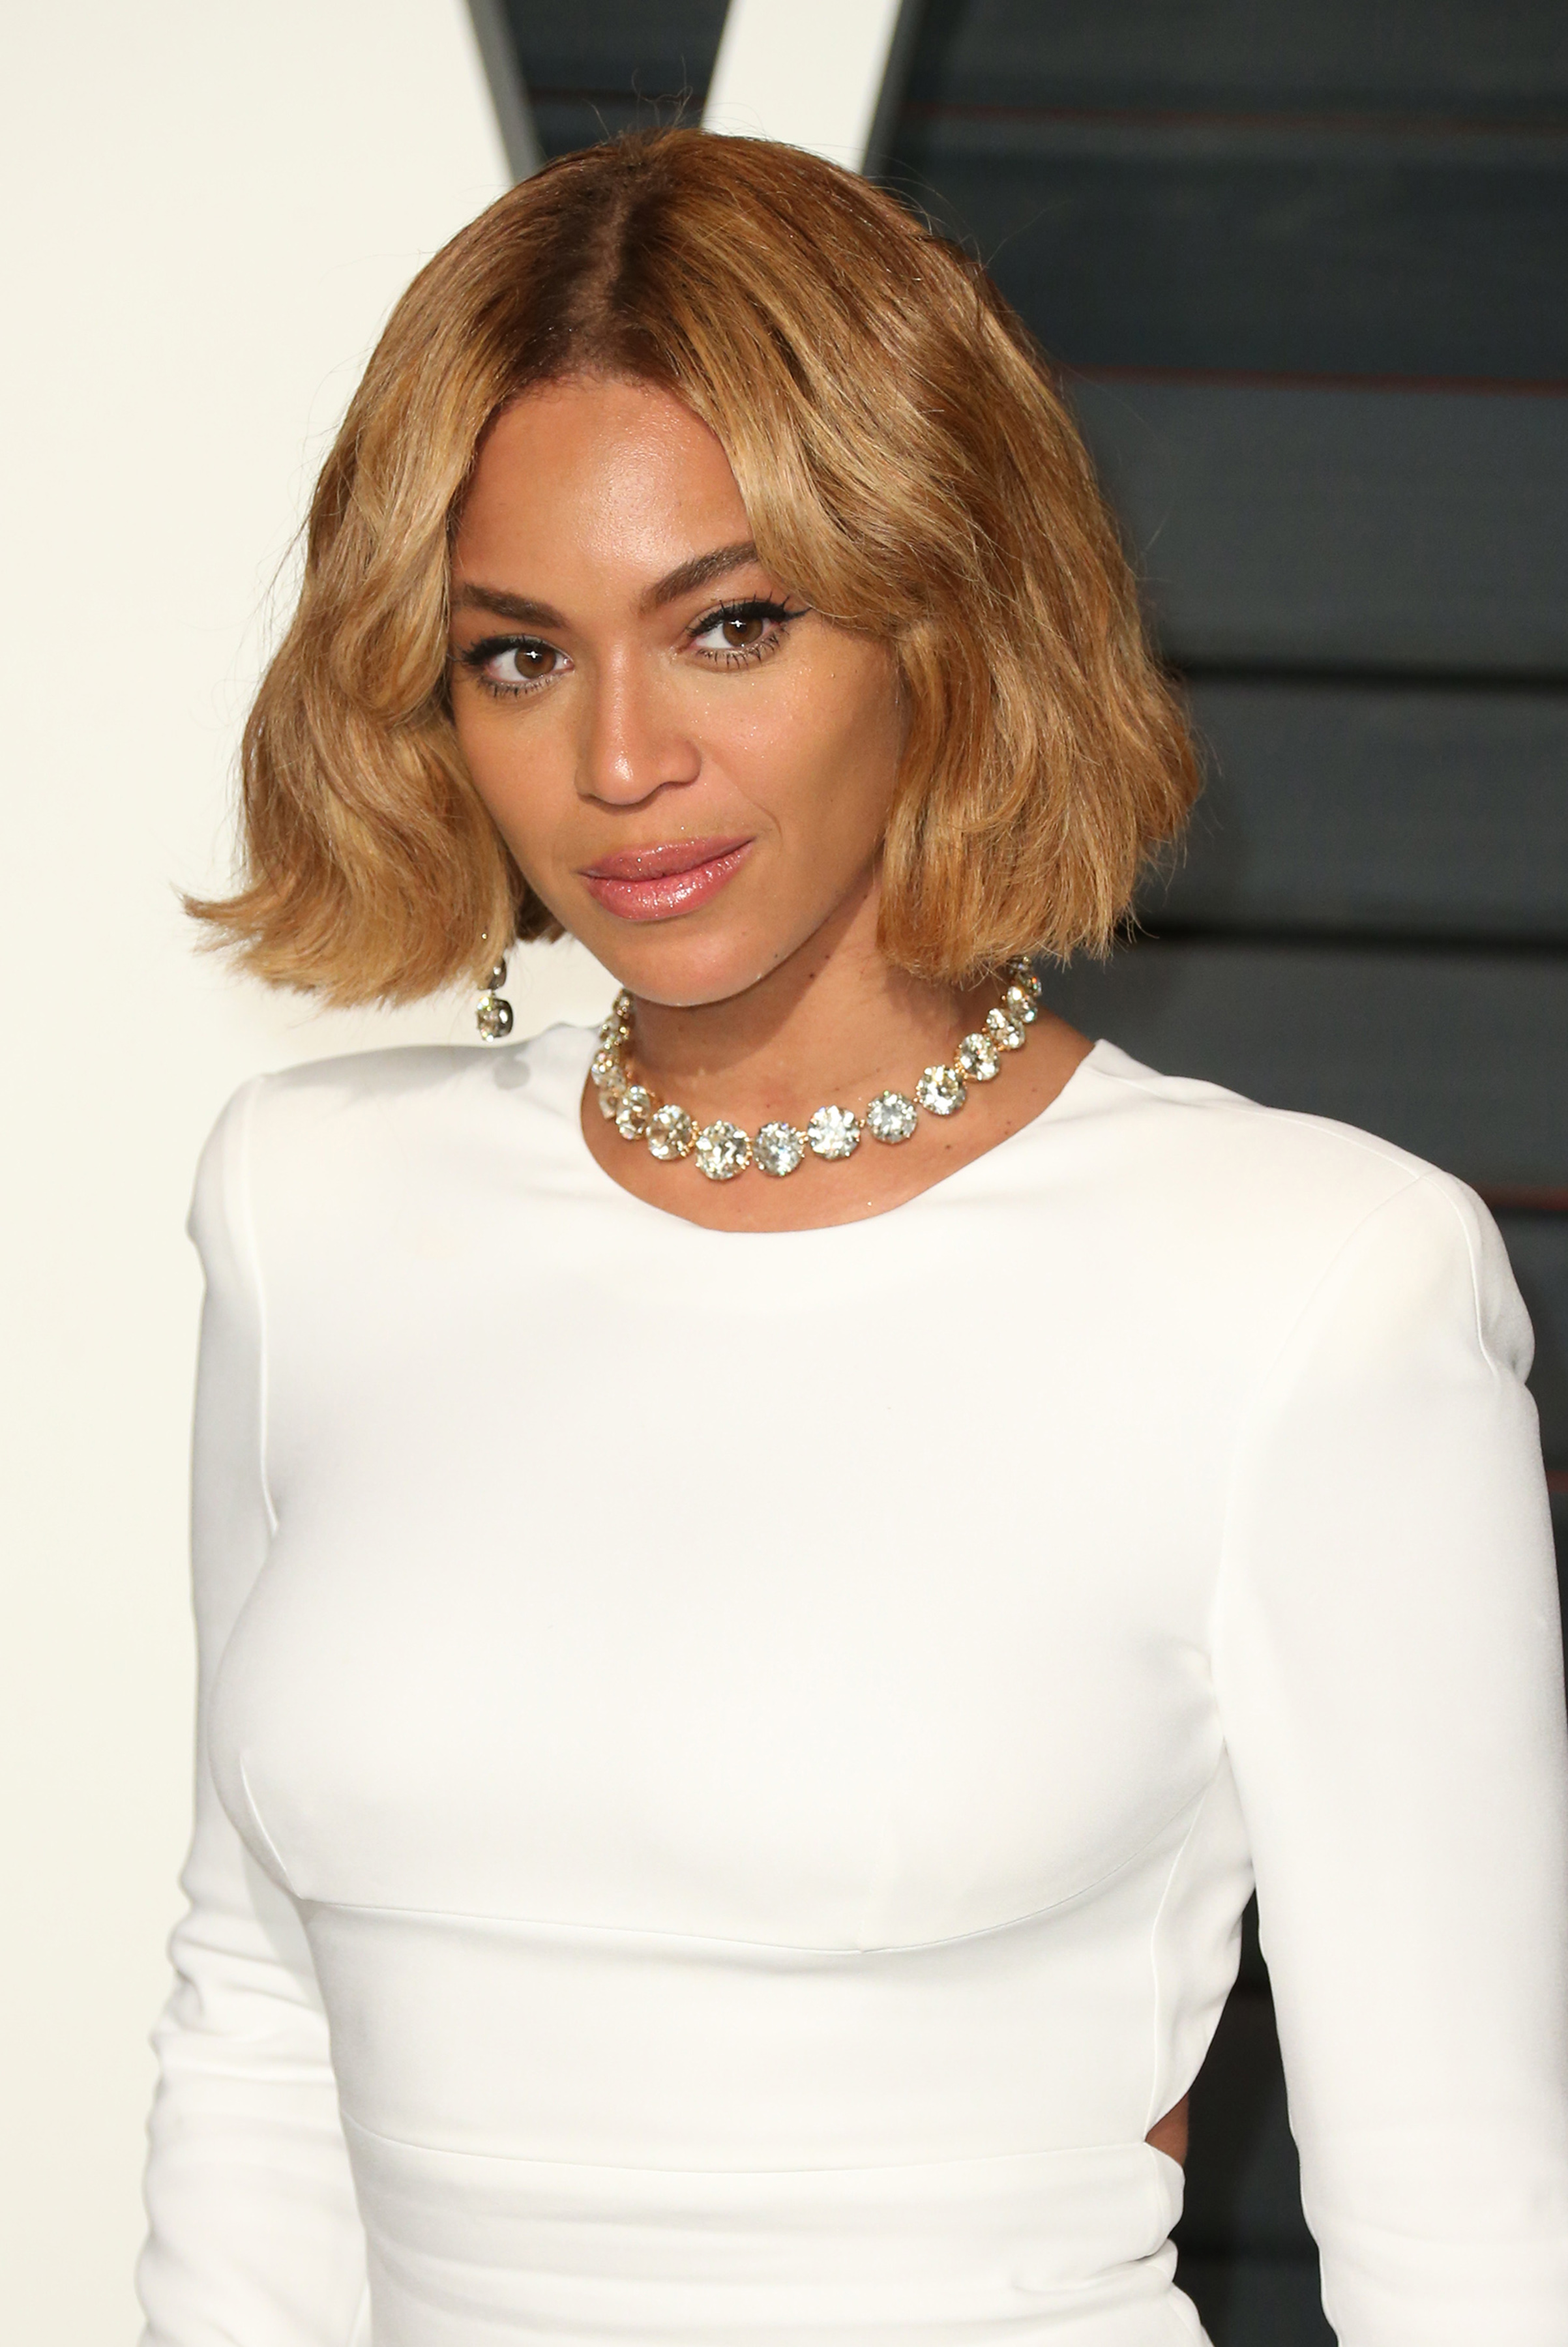 Beyonce at The 87th Annual Oscars - Vanity Fair Oscar Party at Wallis Annenberg Center for the Performing Arts and The Beverly Hills City Hall - Arrivals (FayesVision/WENN.com)